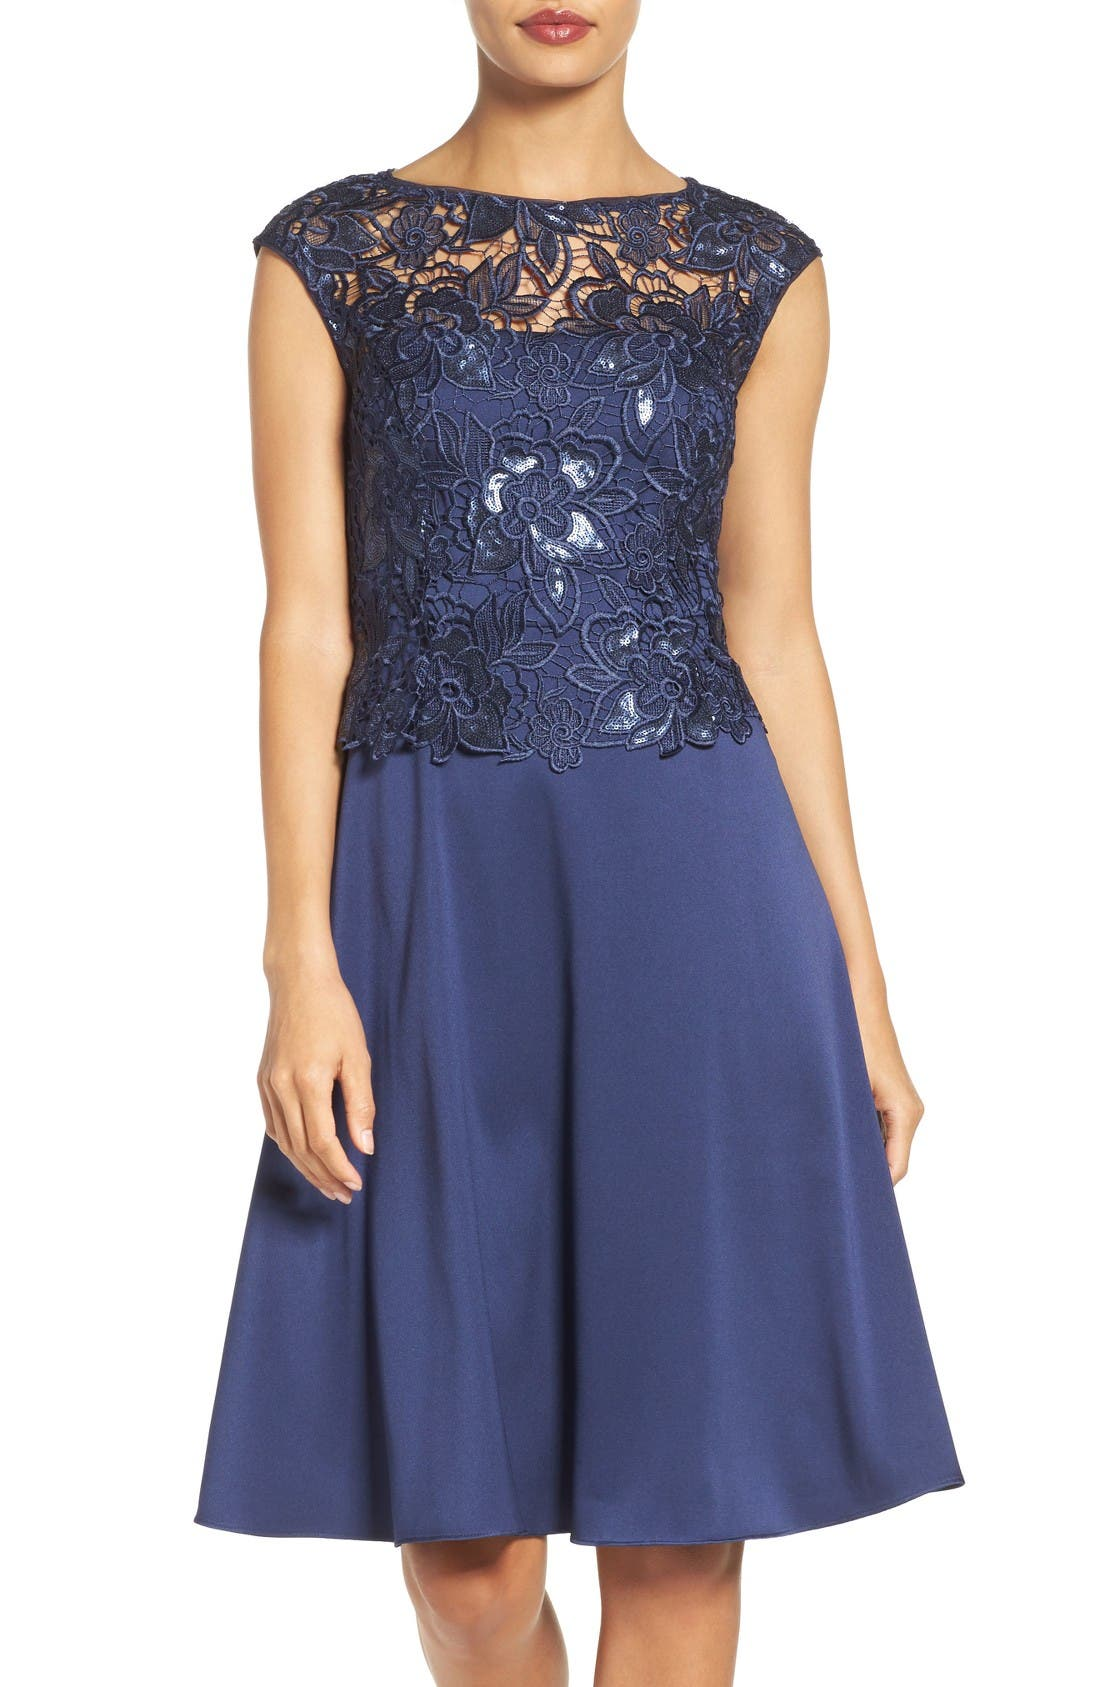 Main Image - Adrianna Papell Fit & Flare Dress